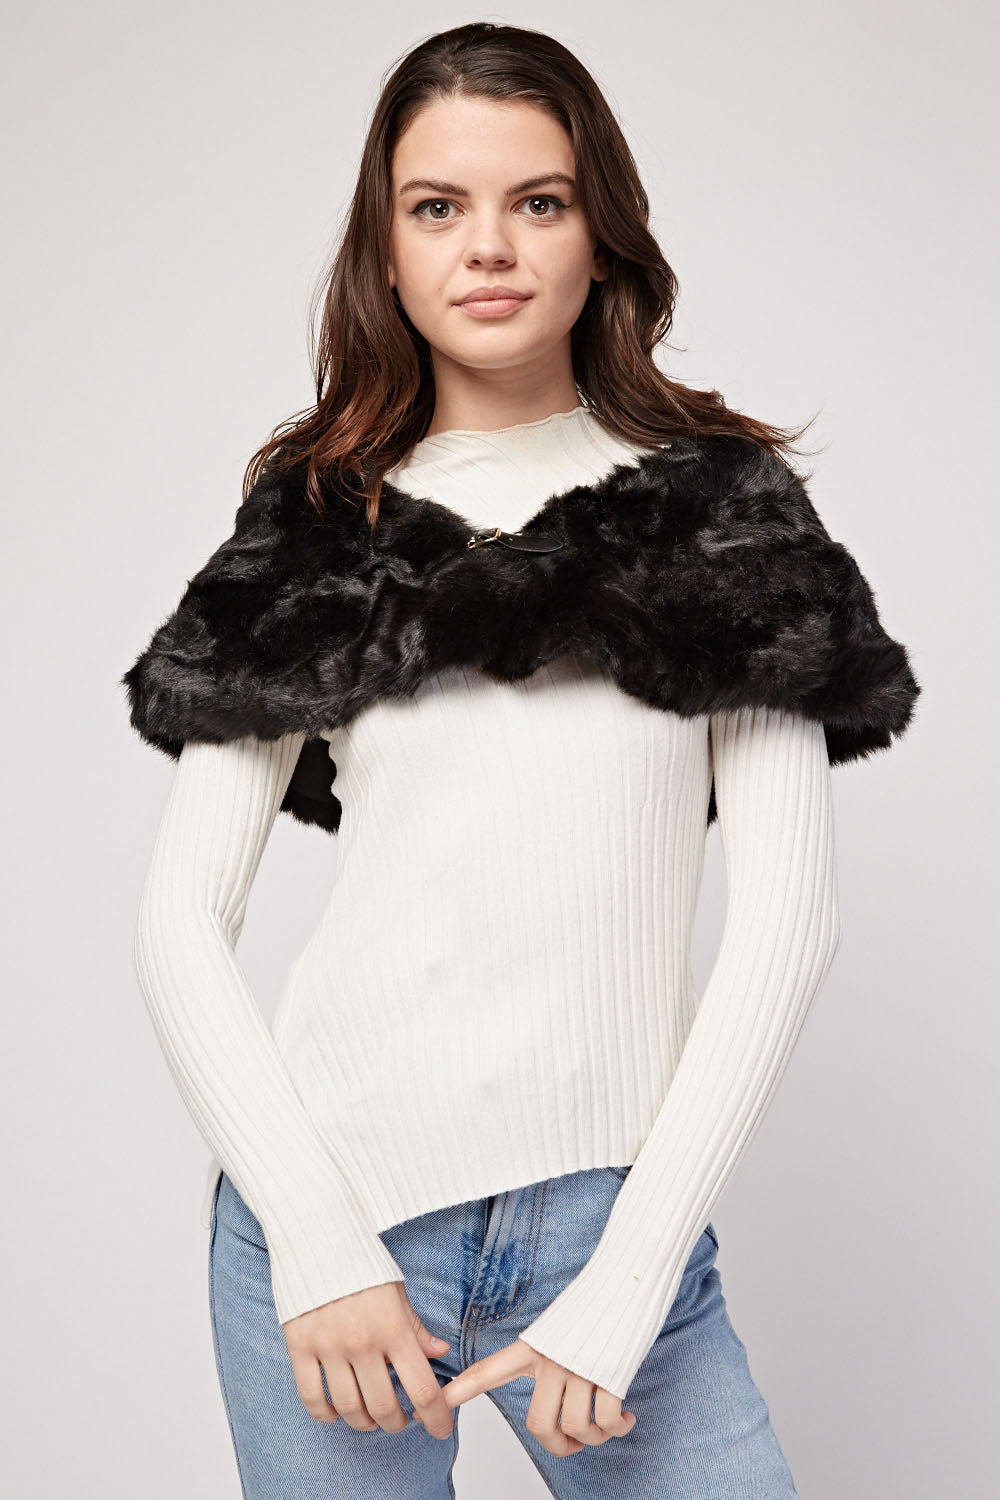 Akosua Buckle Style Collar Faux Fur Snood - Woven Trends